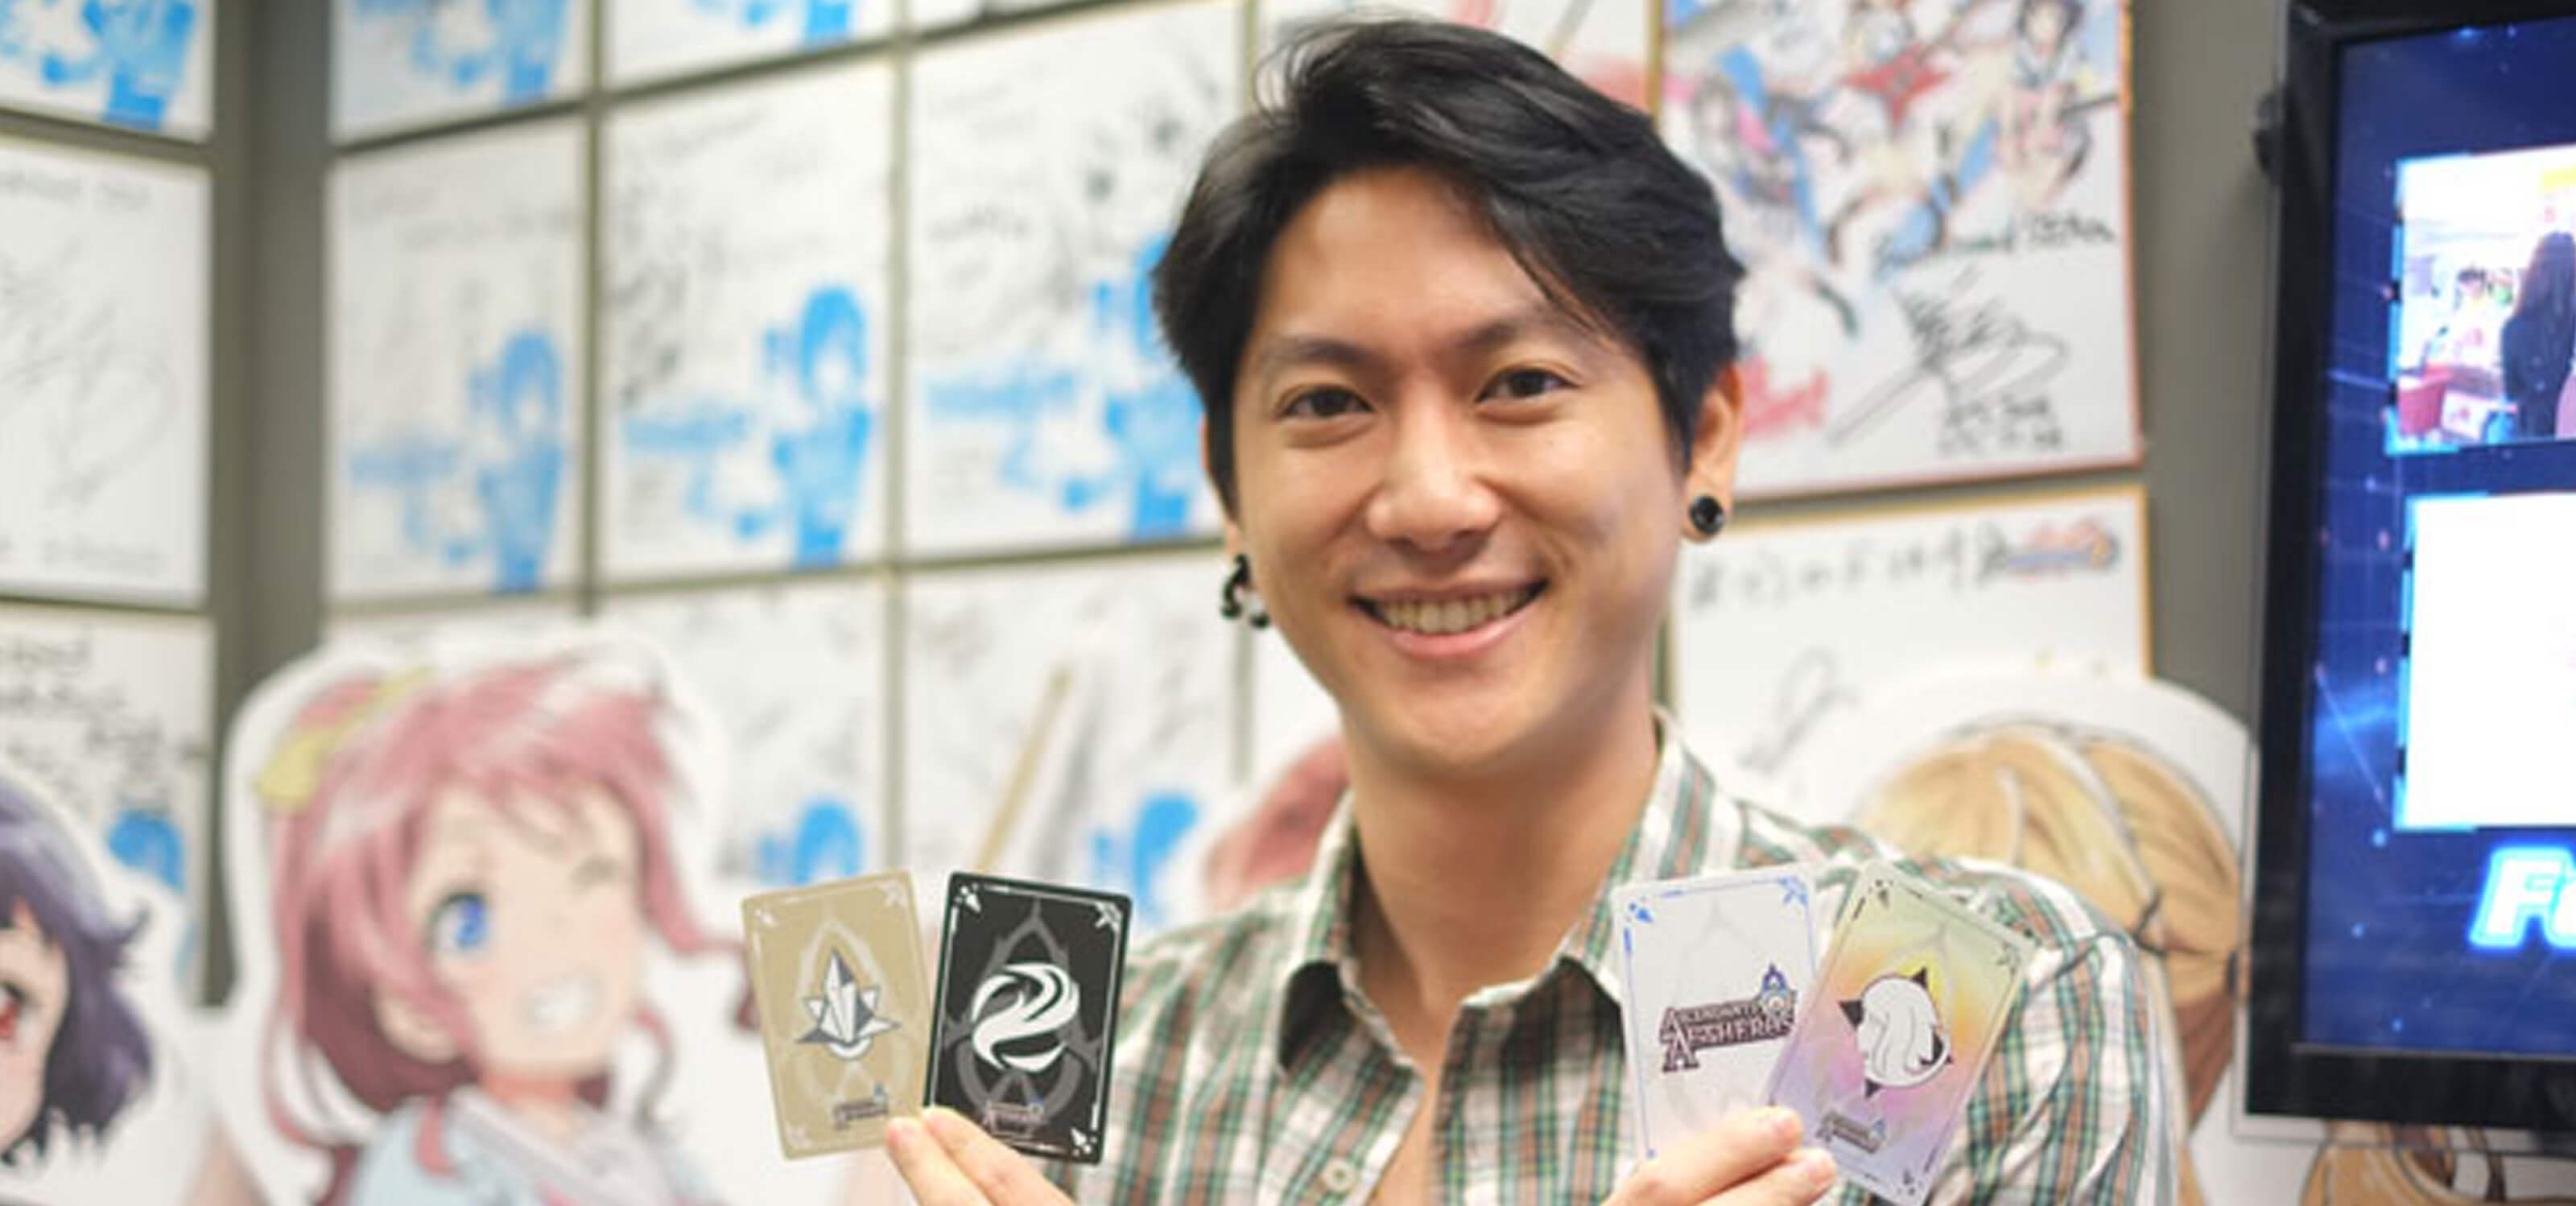 RTIS graduate Rudy Ng poses holding four cards from the card game Ascendants of Aetheros